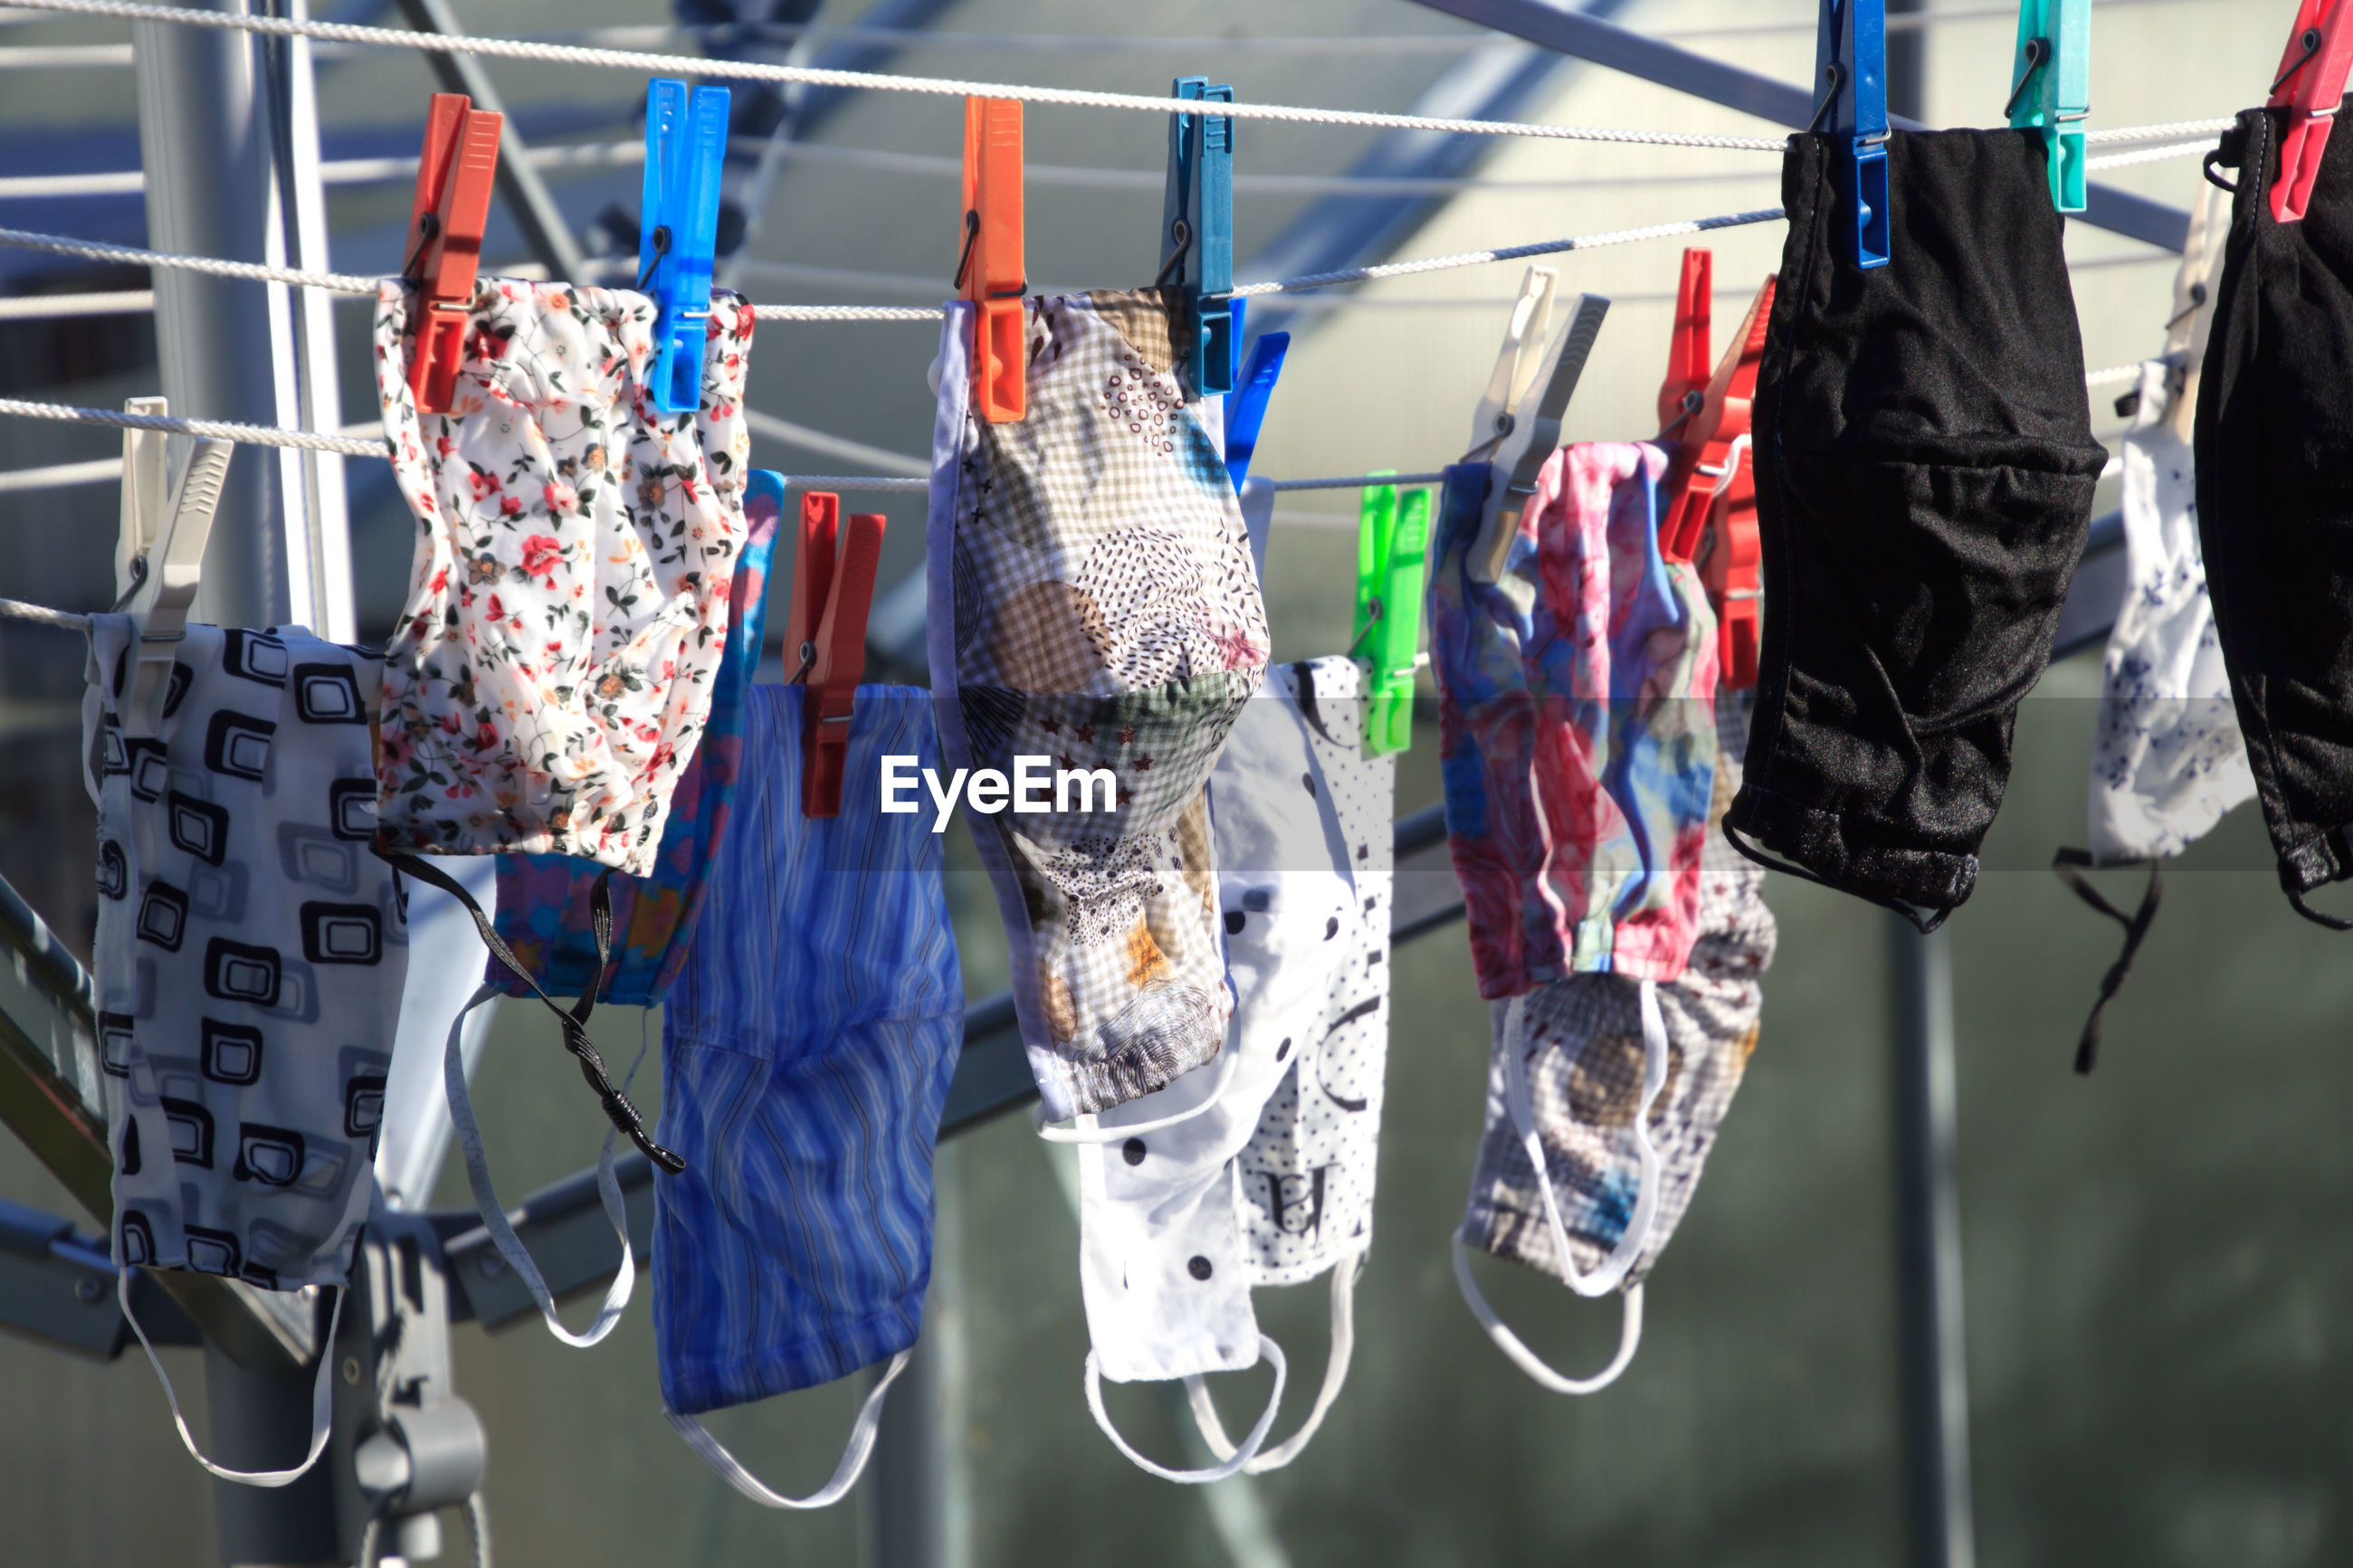 CLOSE-UP OF MULTI COLORED CLOTHESPINS HANGING ON RACK